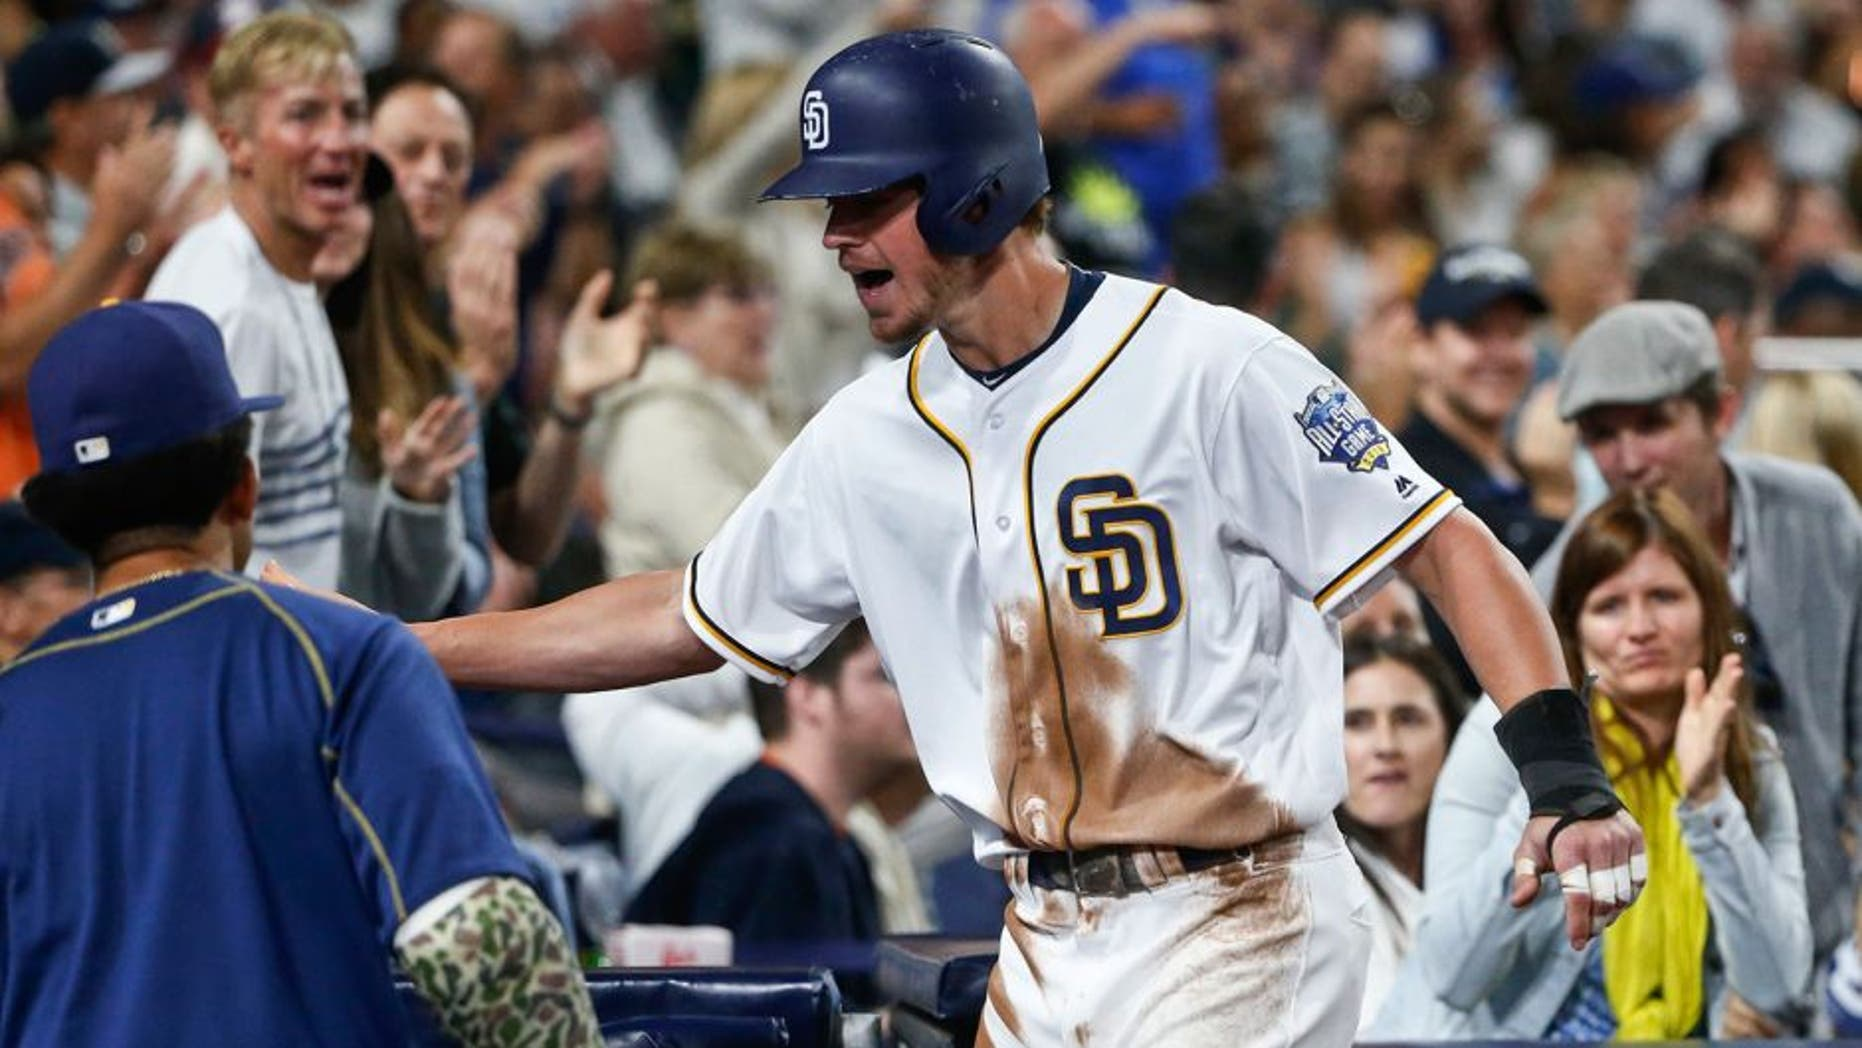 San Diego Padres' Wil Myers is congratulated at the dugout after scoring against the New York Yankees during the sixth inning of a baseball game Saturday, July 2, 2016, in San Diego. (AP Photo/Lenny Ignelzi)